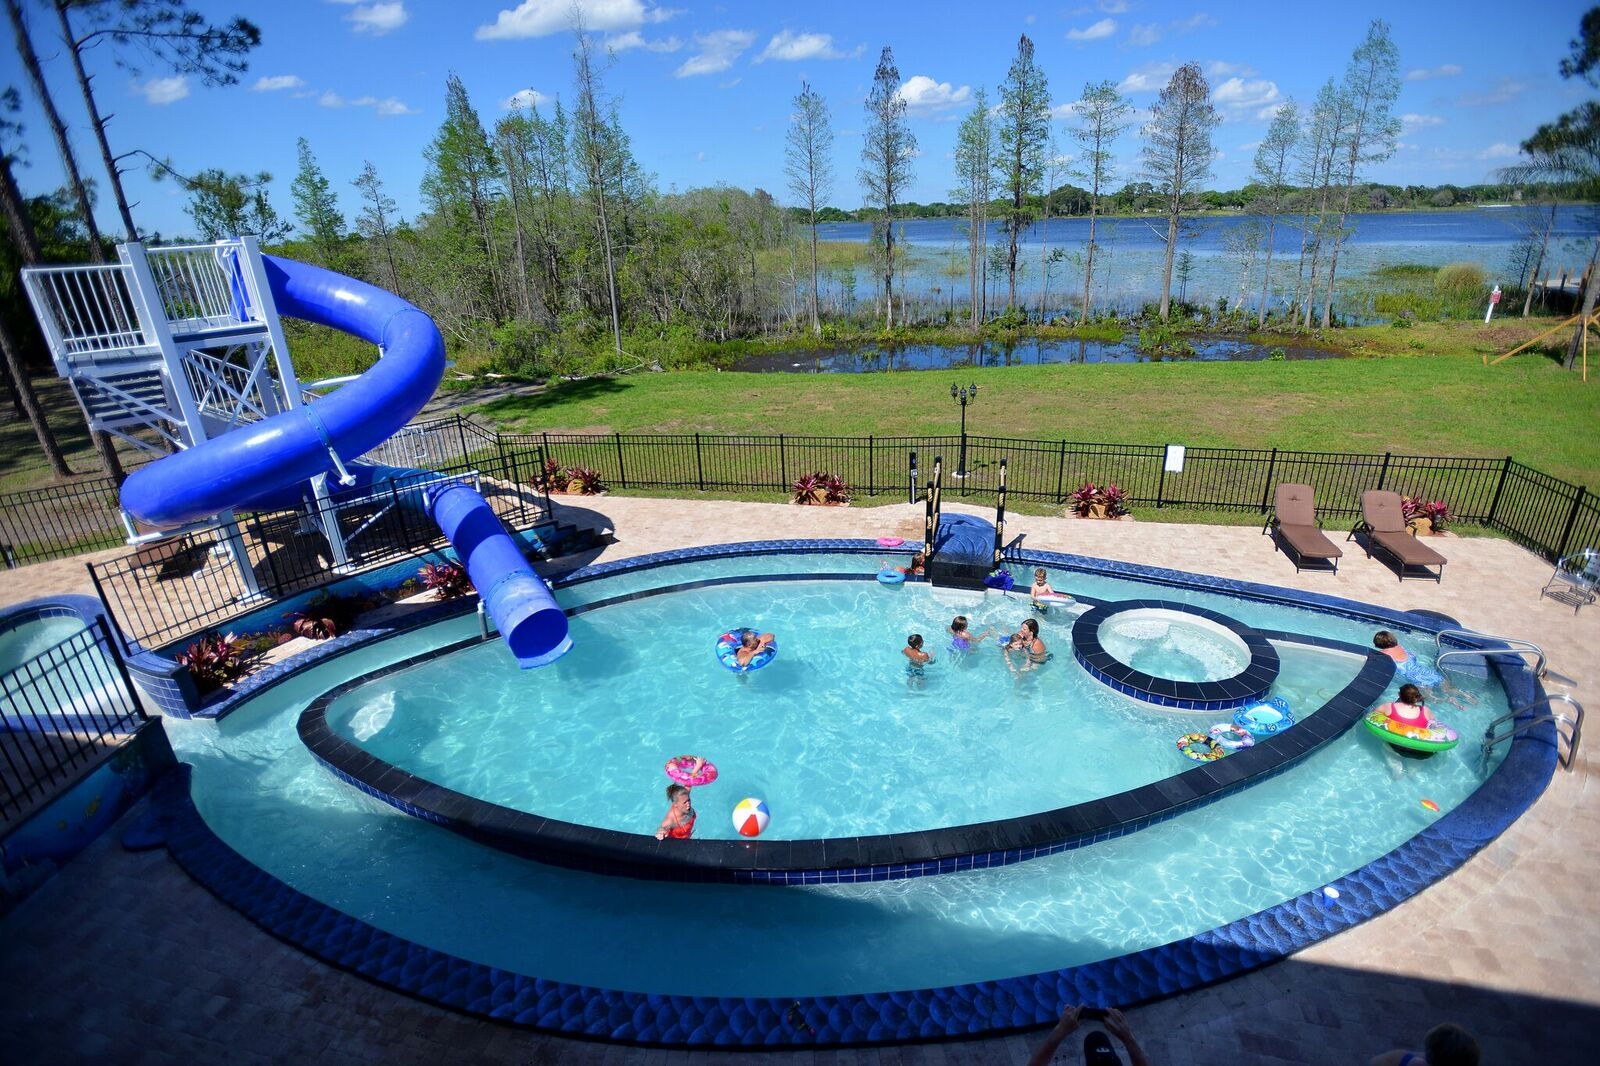 Mansions With Pools And Waterslides the great escape lakeside - 10 acre rental home near orlando, fl